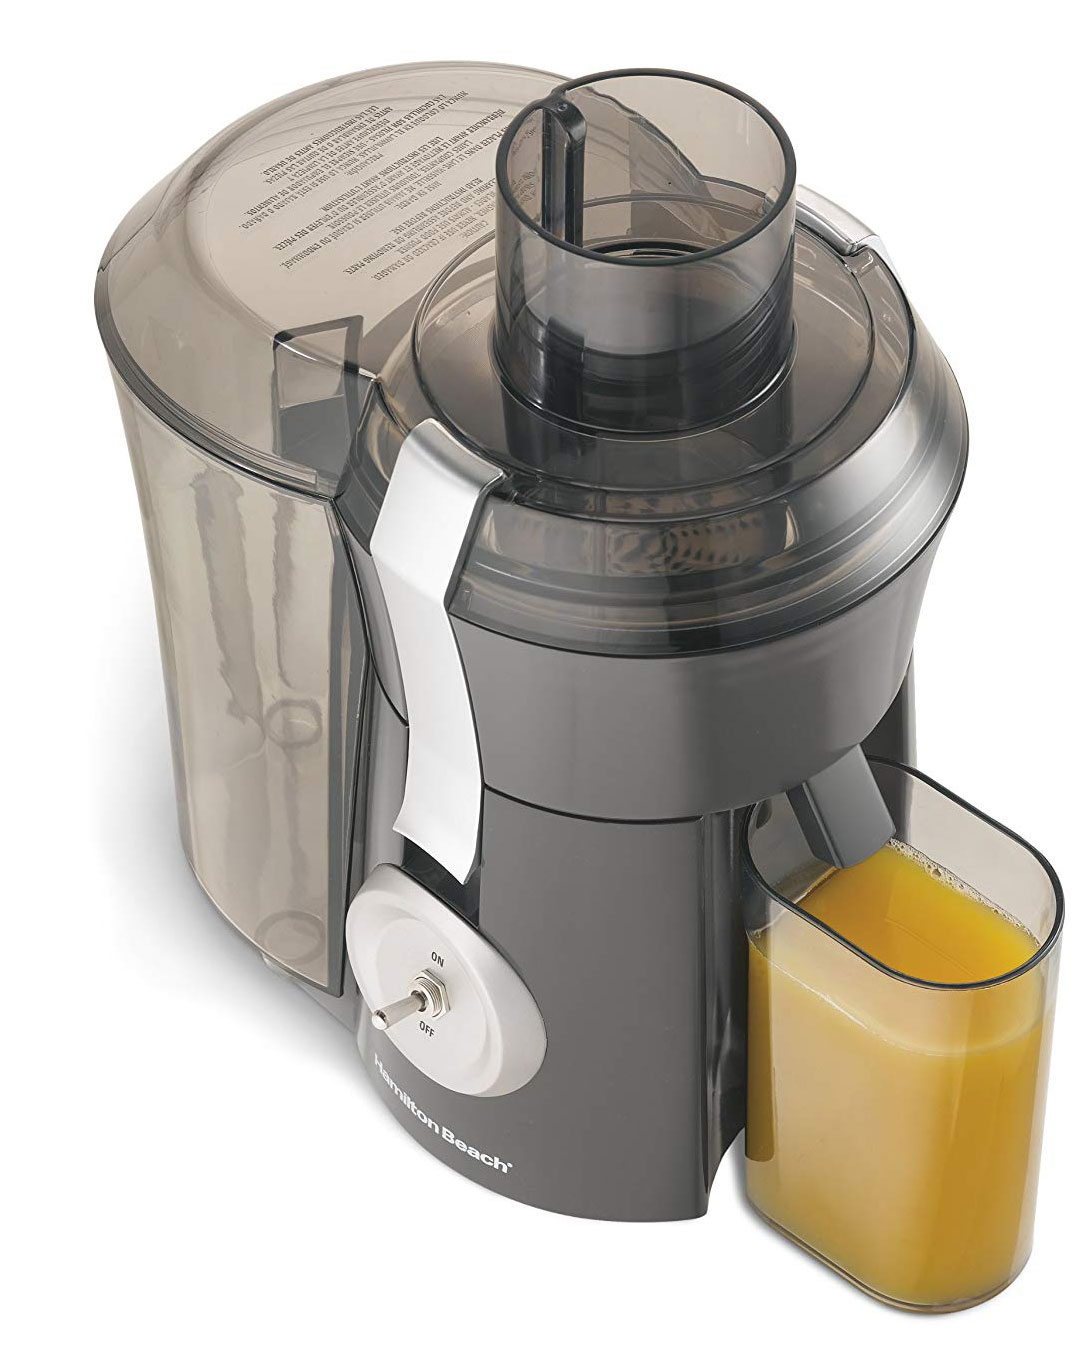 7 Best Juicers For Every Budget And Need With Reviews Real Simple